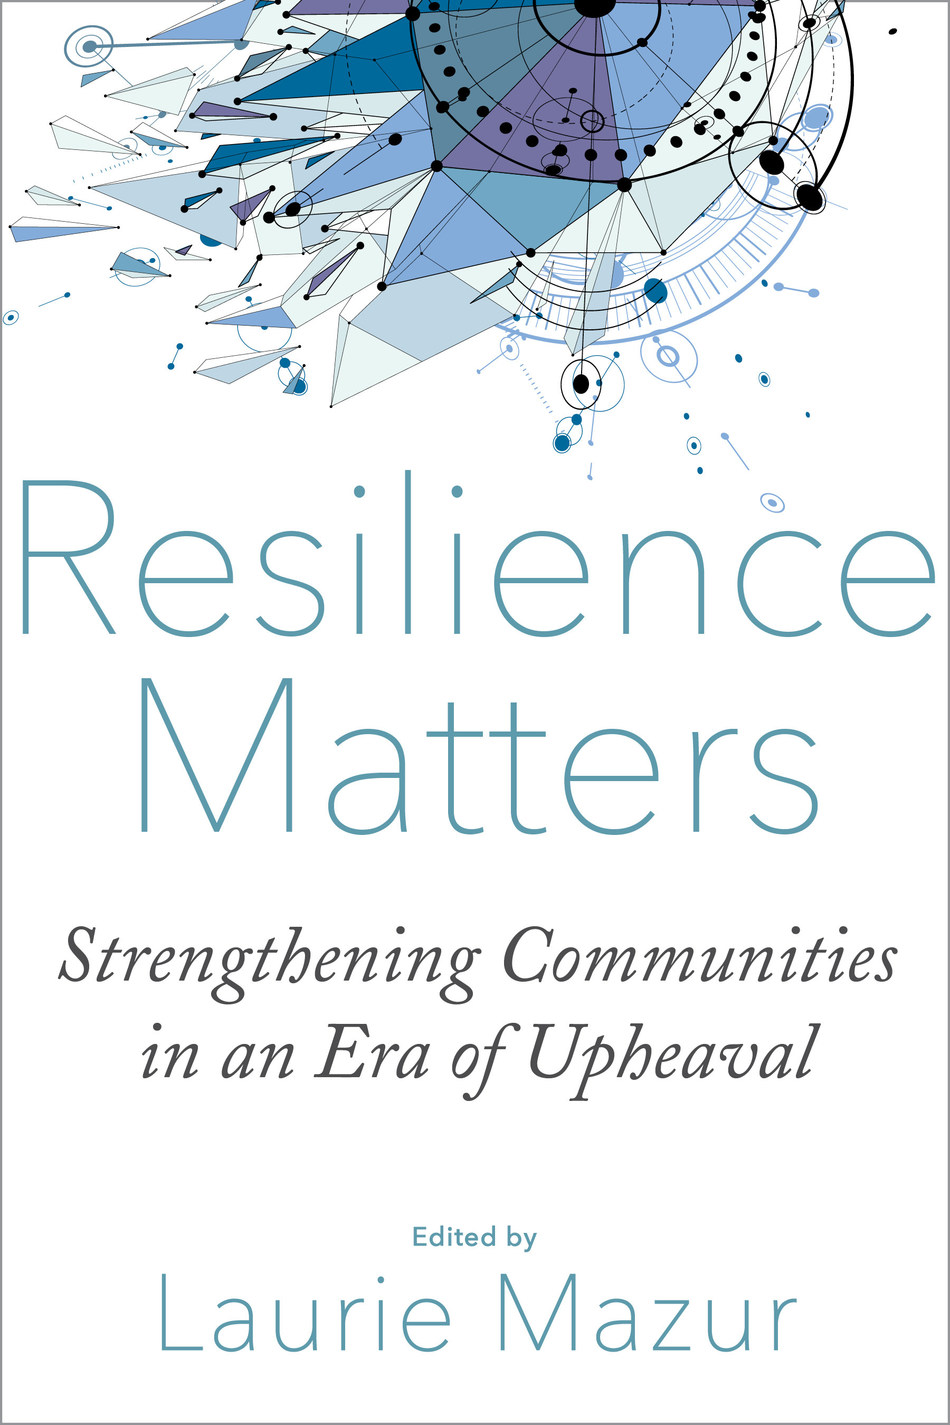 Resilience Matters: Strengthening Communities in an Era of Upheaval